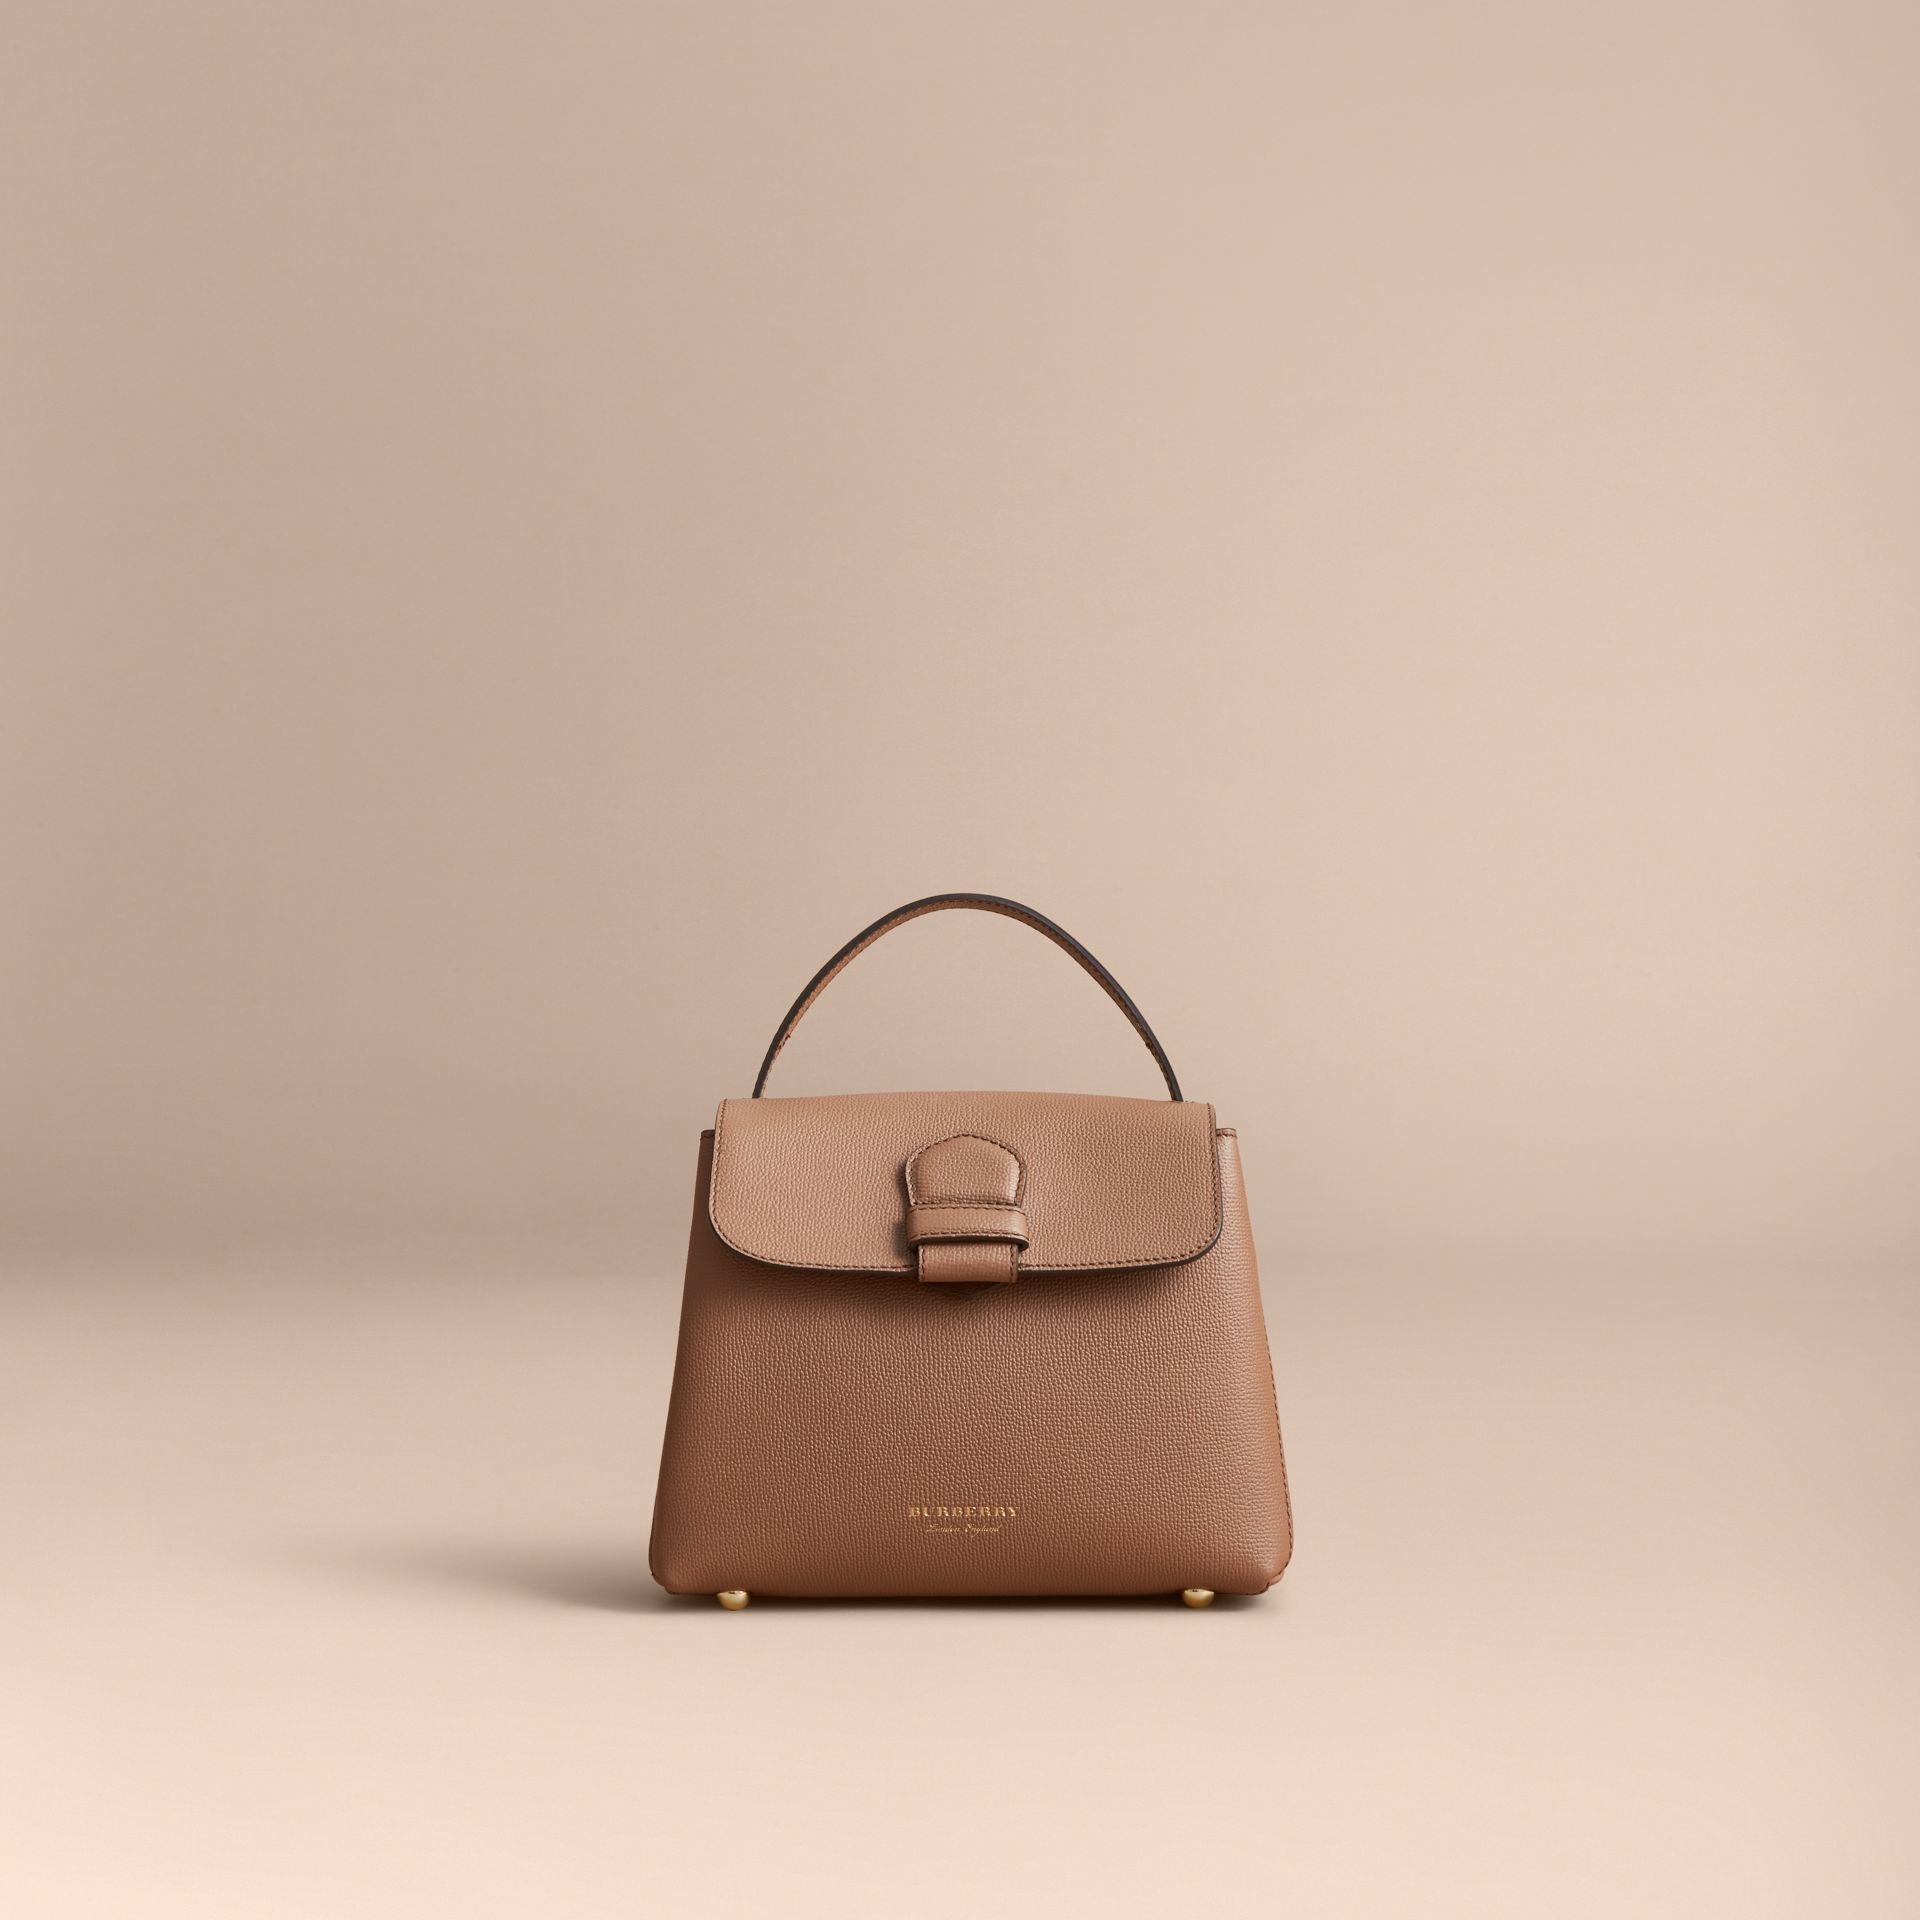 Small Grainy Leather and House Check Tote Bag in Dark Sand - Women | Burberry - gallery image 6